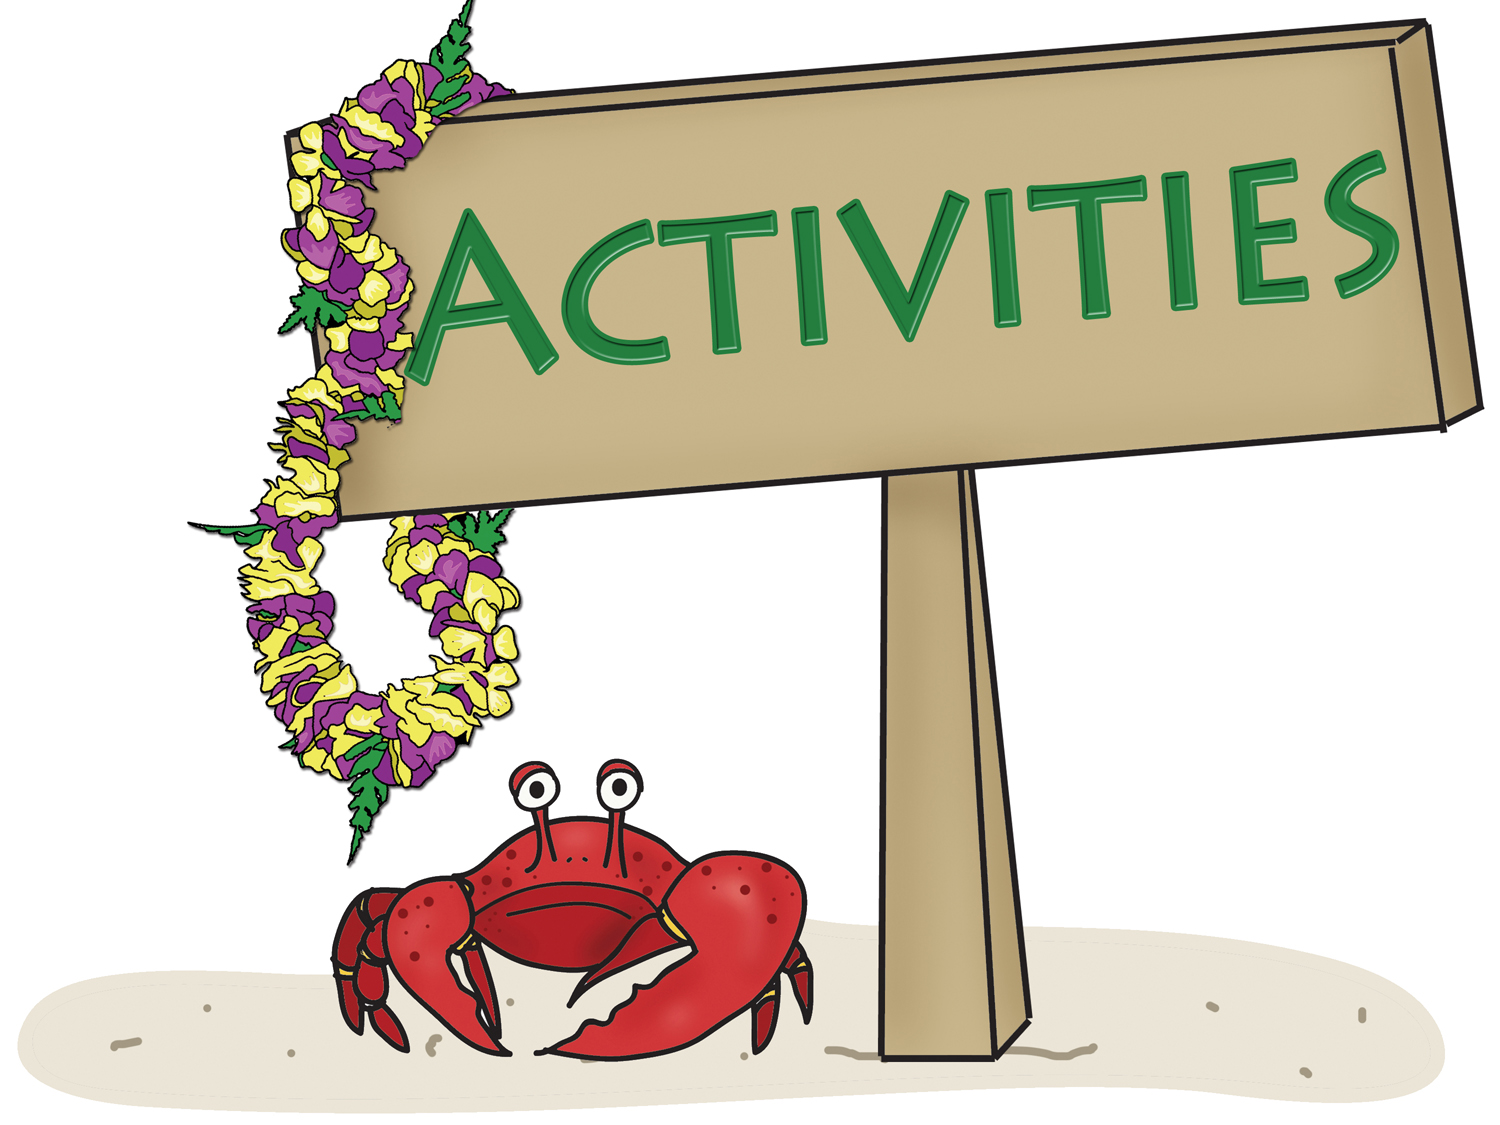 Activity Connection.com | Activity Director and Activity  - 2000 x 1241 jpeg 227kB